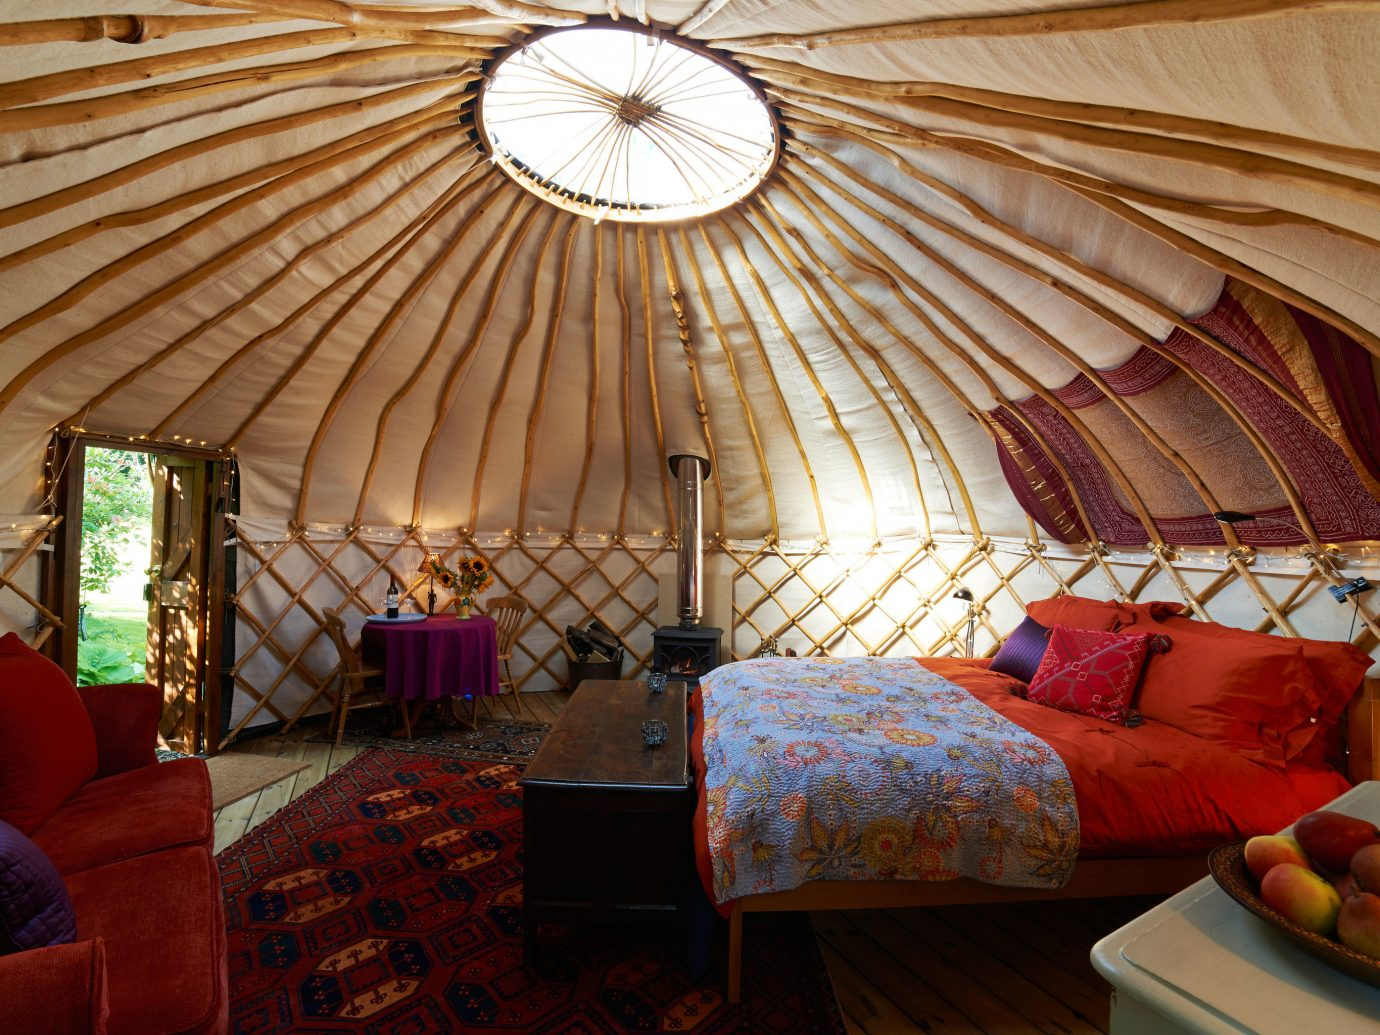 10 Luxury Camping Trips to Take This Summer